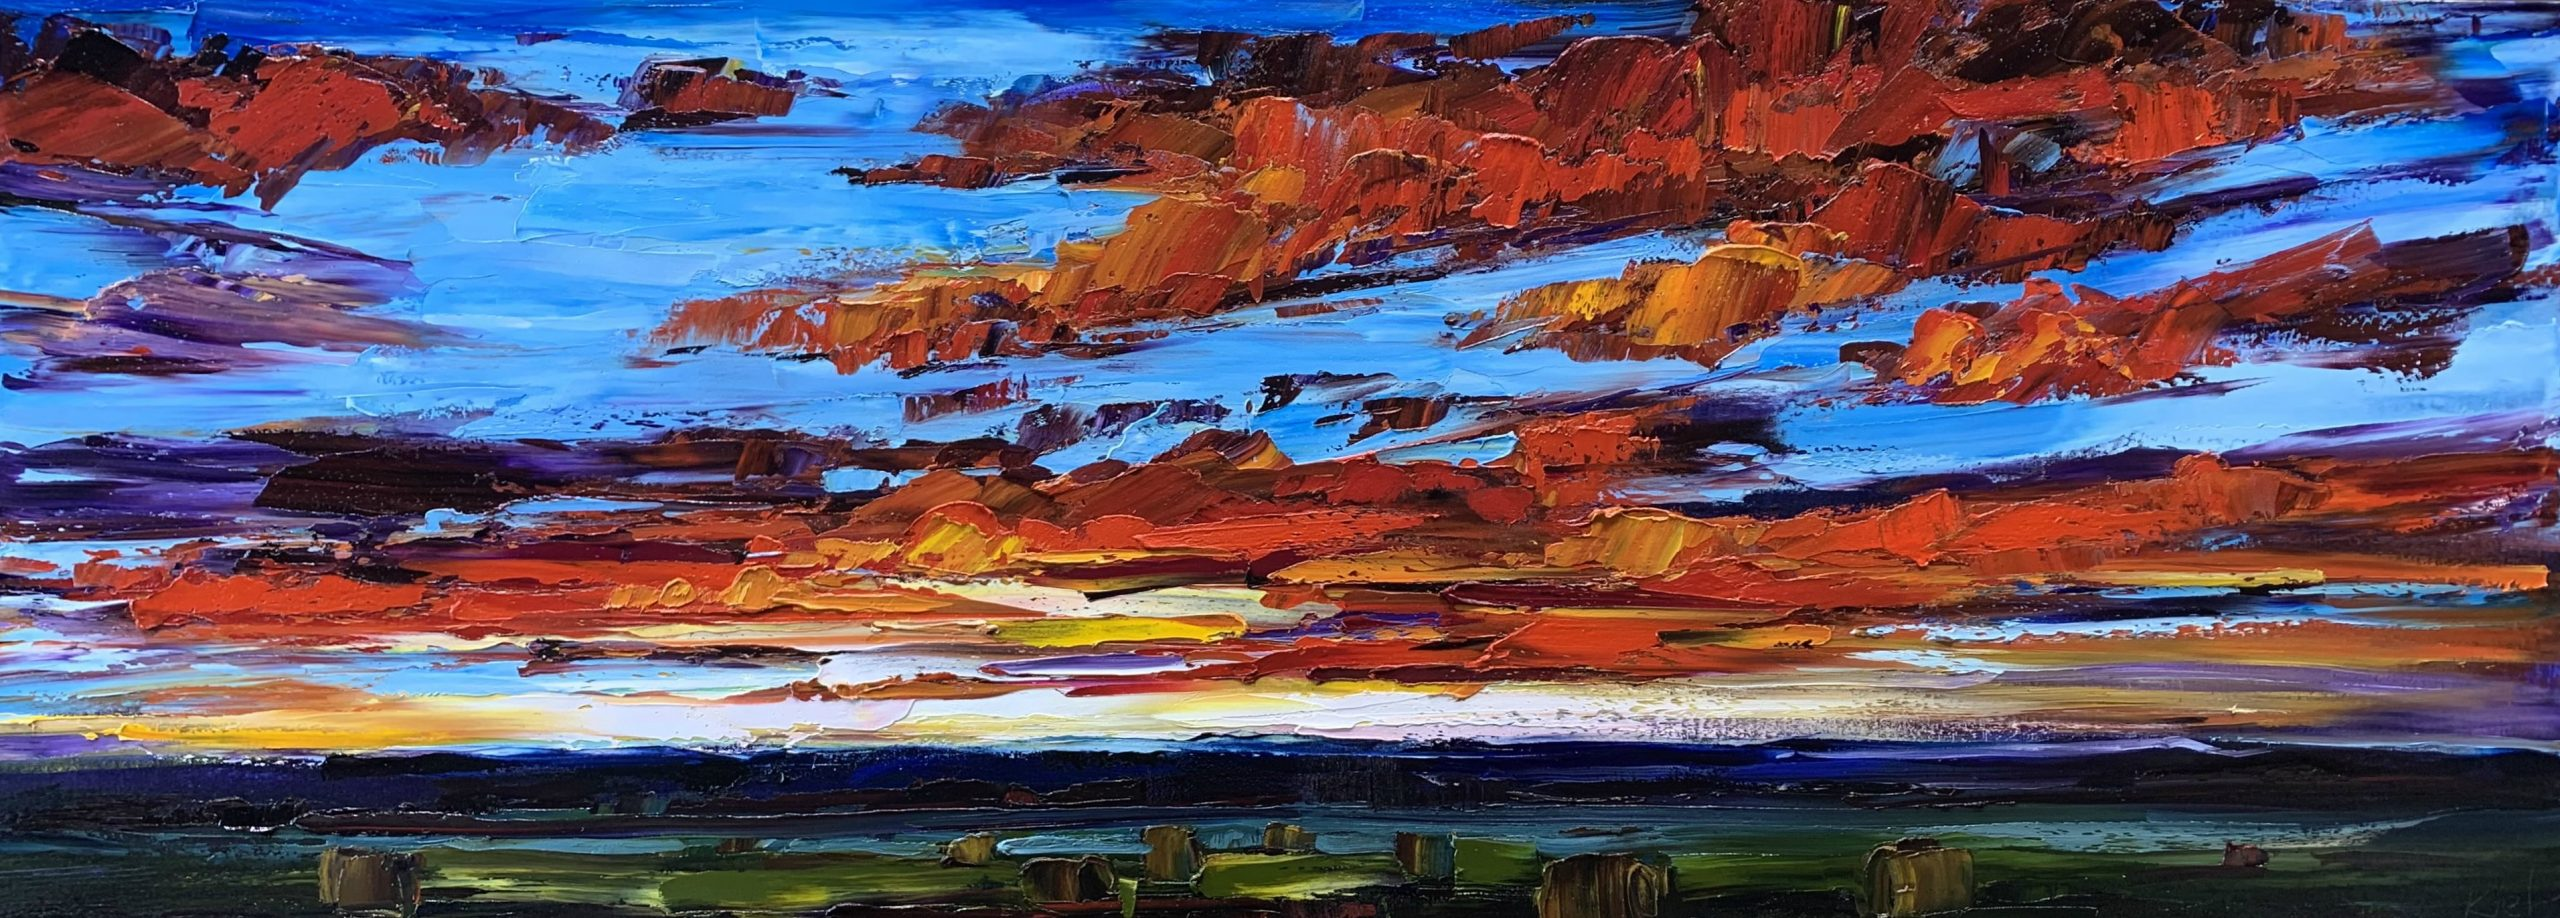 Chasing the Sun, landscape painting by Kimberly Kiel | Effusion Art Gallery + Cast Glass Studio, Invermere BC